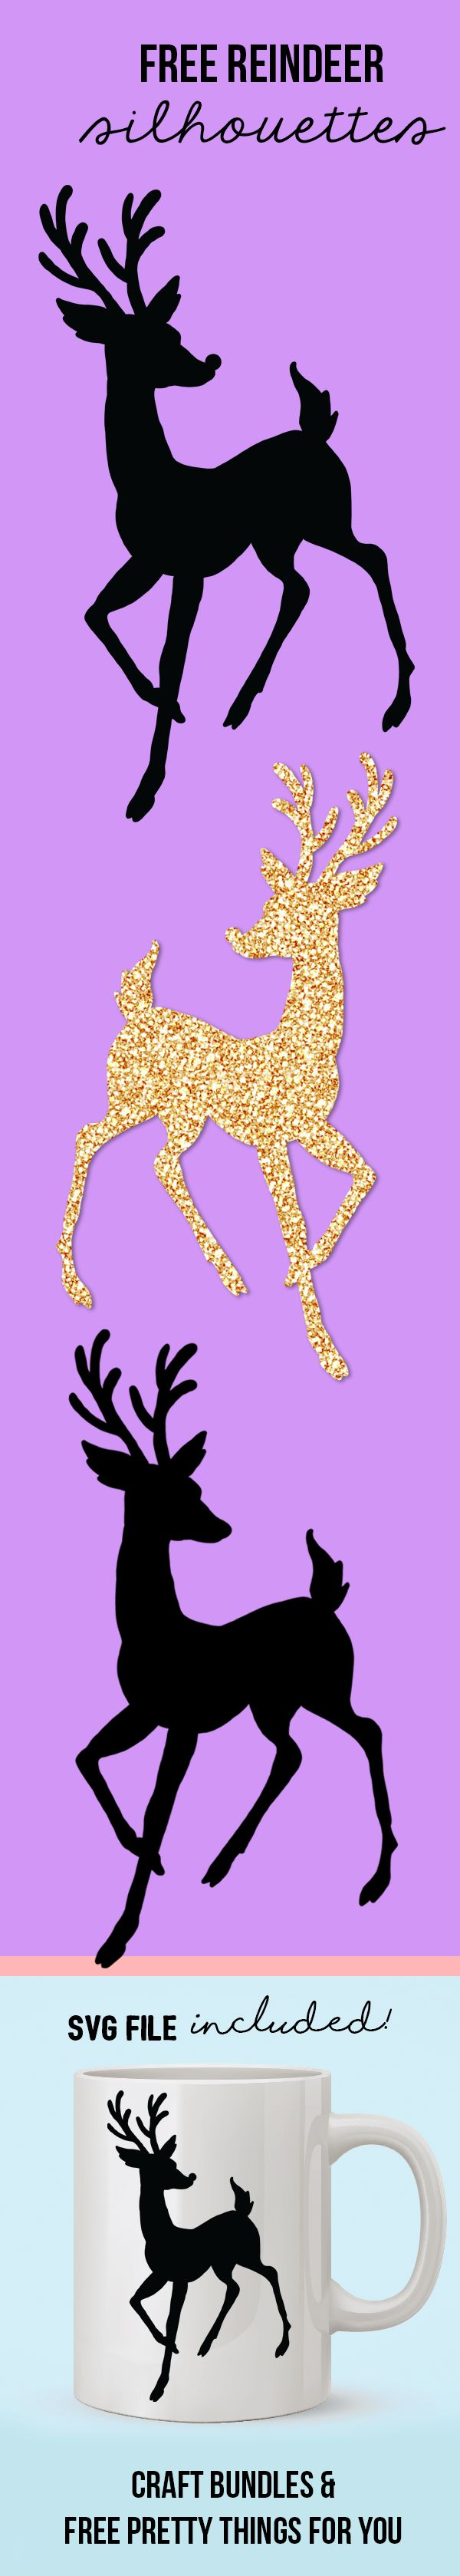 Coloring page additionally grumpy cat disney likewise truck coloring - Free Reindeer Silhouette Cutting Files